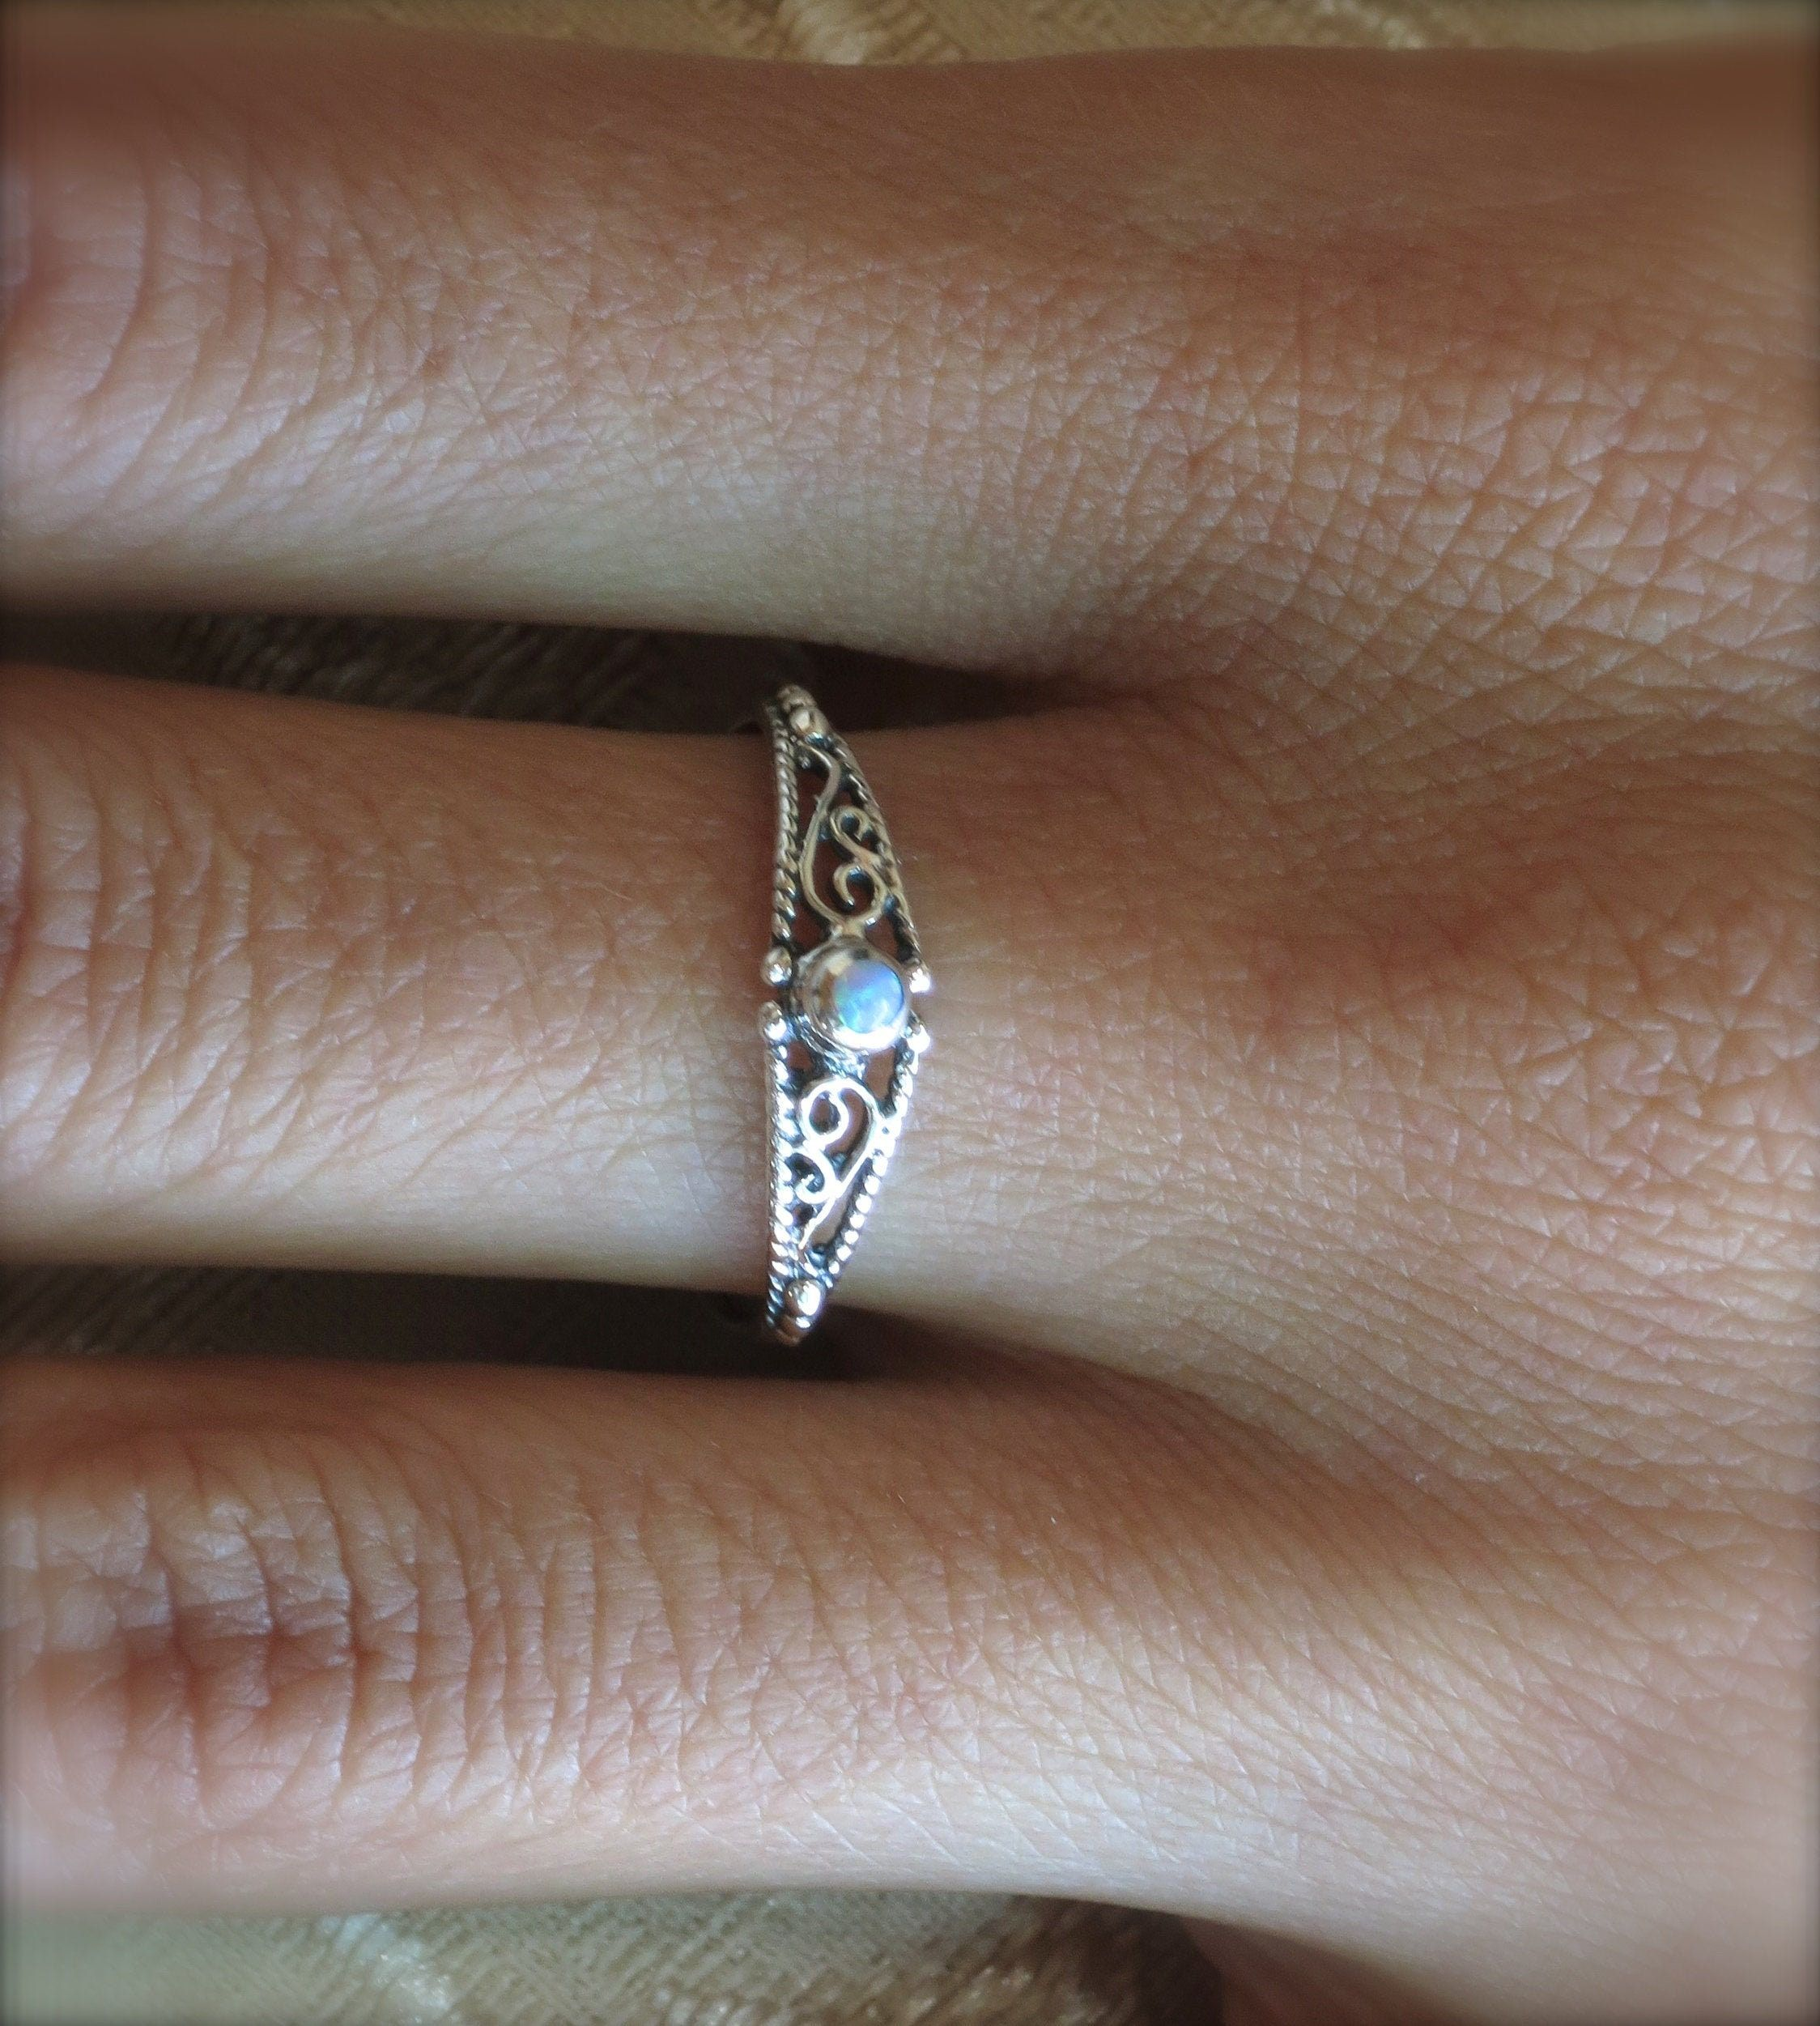 """""""Filigree silver ring, Opal ring, thin ring, classic ring, pretty ring, sterling silver, Boho Opal silver ring. weight- 0.6g width-5mm L-35 stone size- 2mm Opal-the birthstone for October encourages stable, strong and positive communication. provides stability and happiness. 🌸 Features: Handmade ring 🌸 Measurements: Weight - 0.6g Width of the ring at the top - 0.19\"""" (5mm) Stone diameter - 0.07\""""(2mm) 🌸Materials: Sterling Silver Blue Opal 🌸 More info: All my jewelry is carefully wrapped and"""